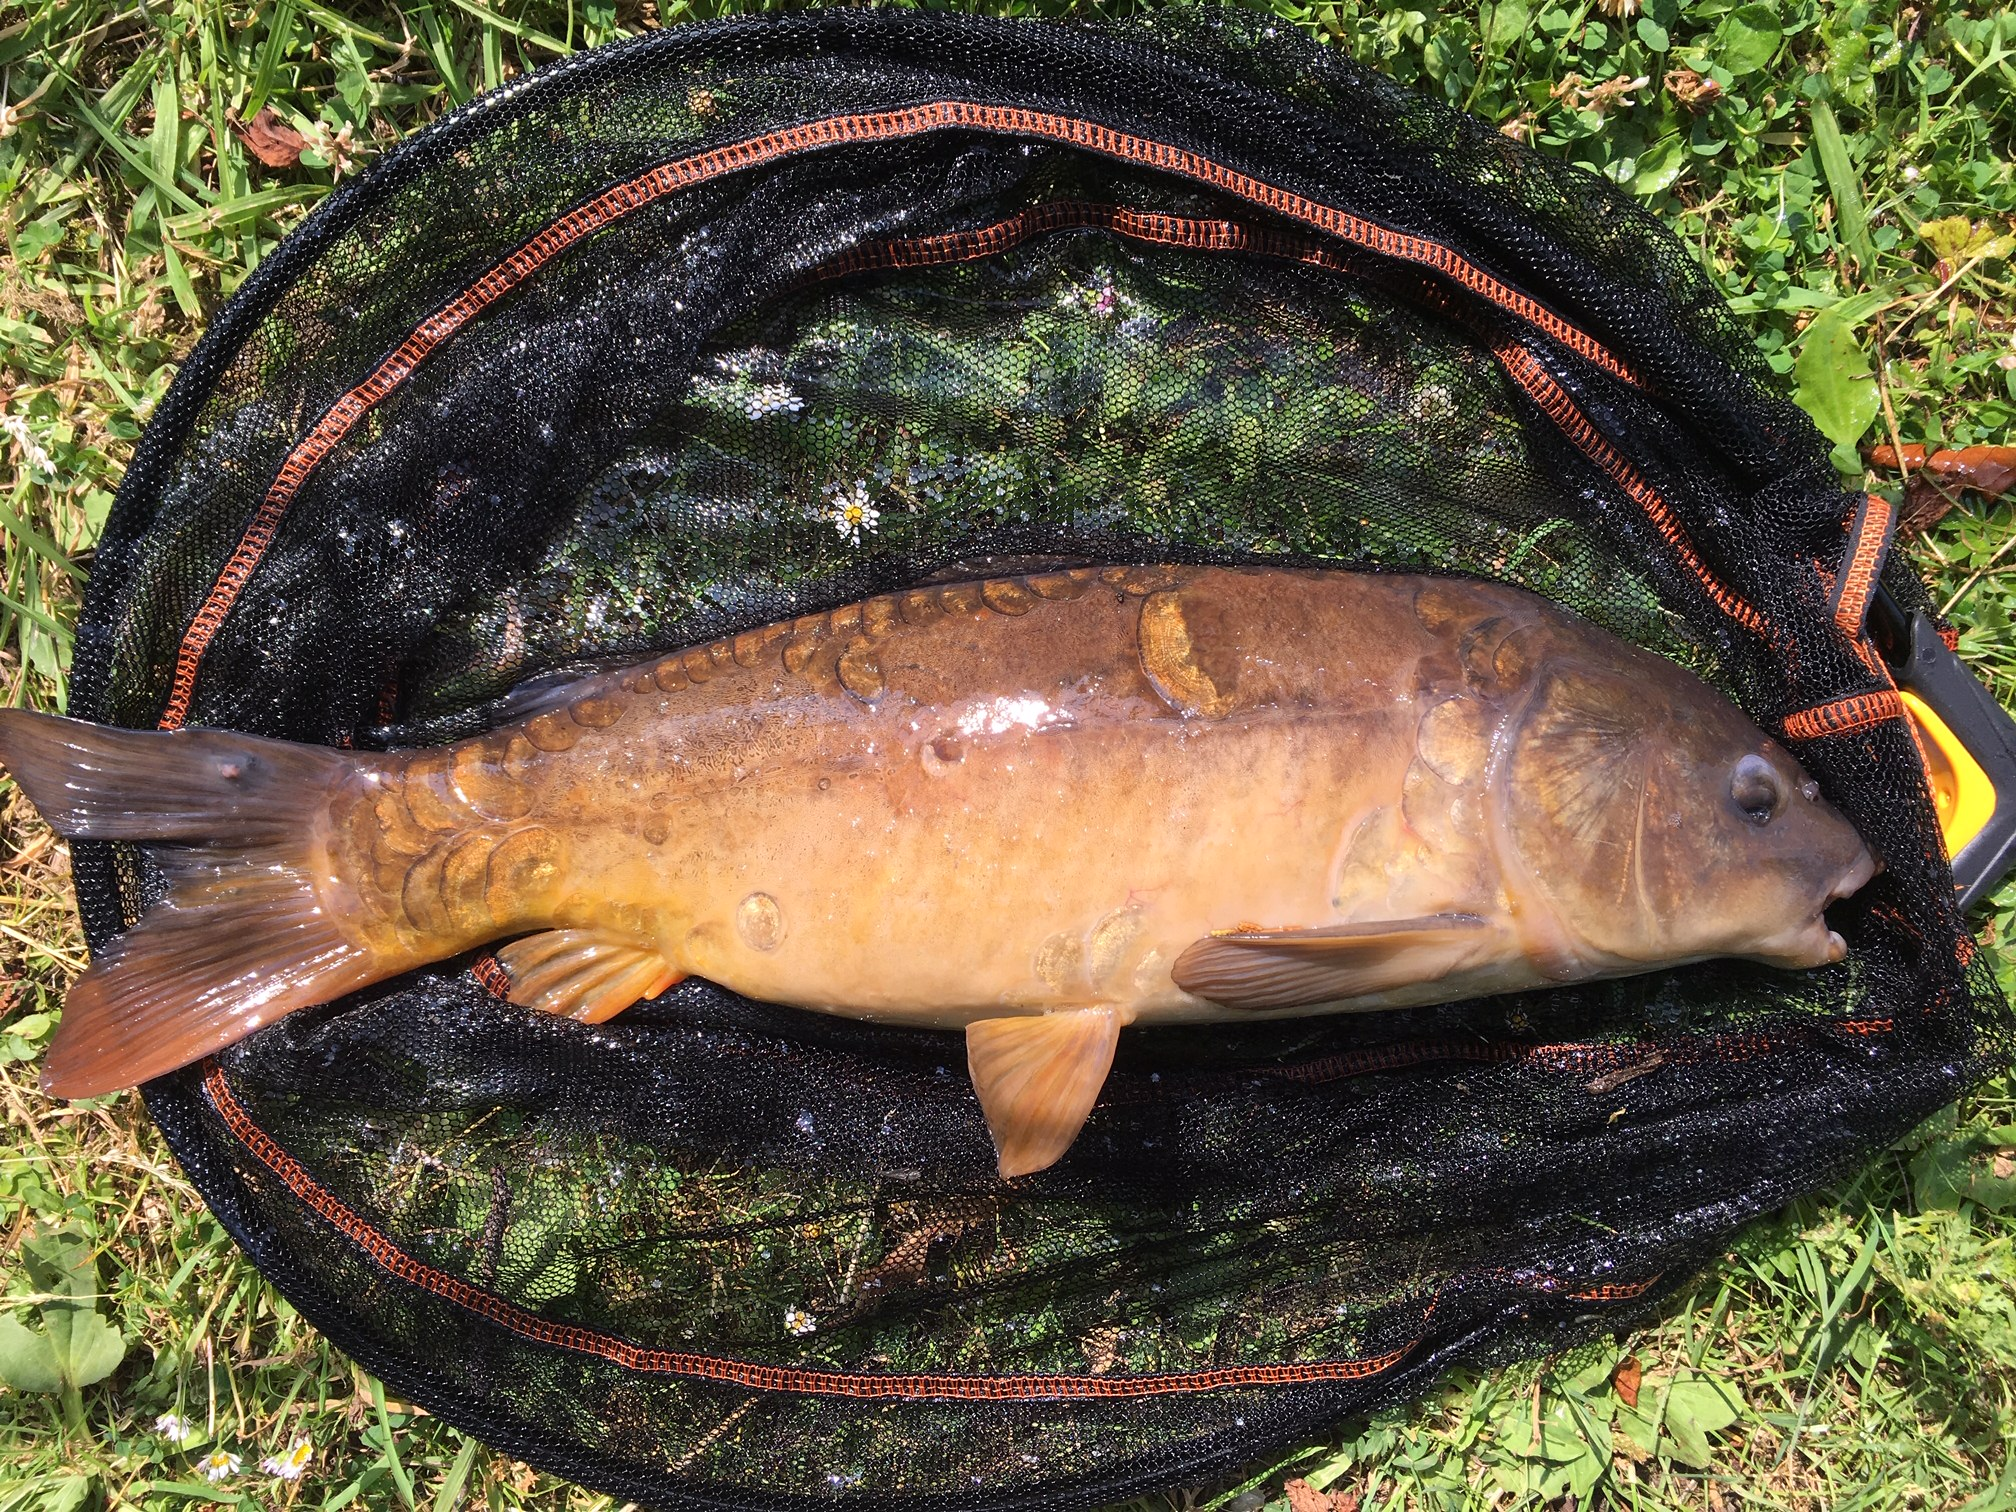 FOUR PICTURES OF CARP CAUGHT BY STEVE MALAM 8/7/19.